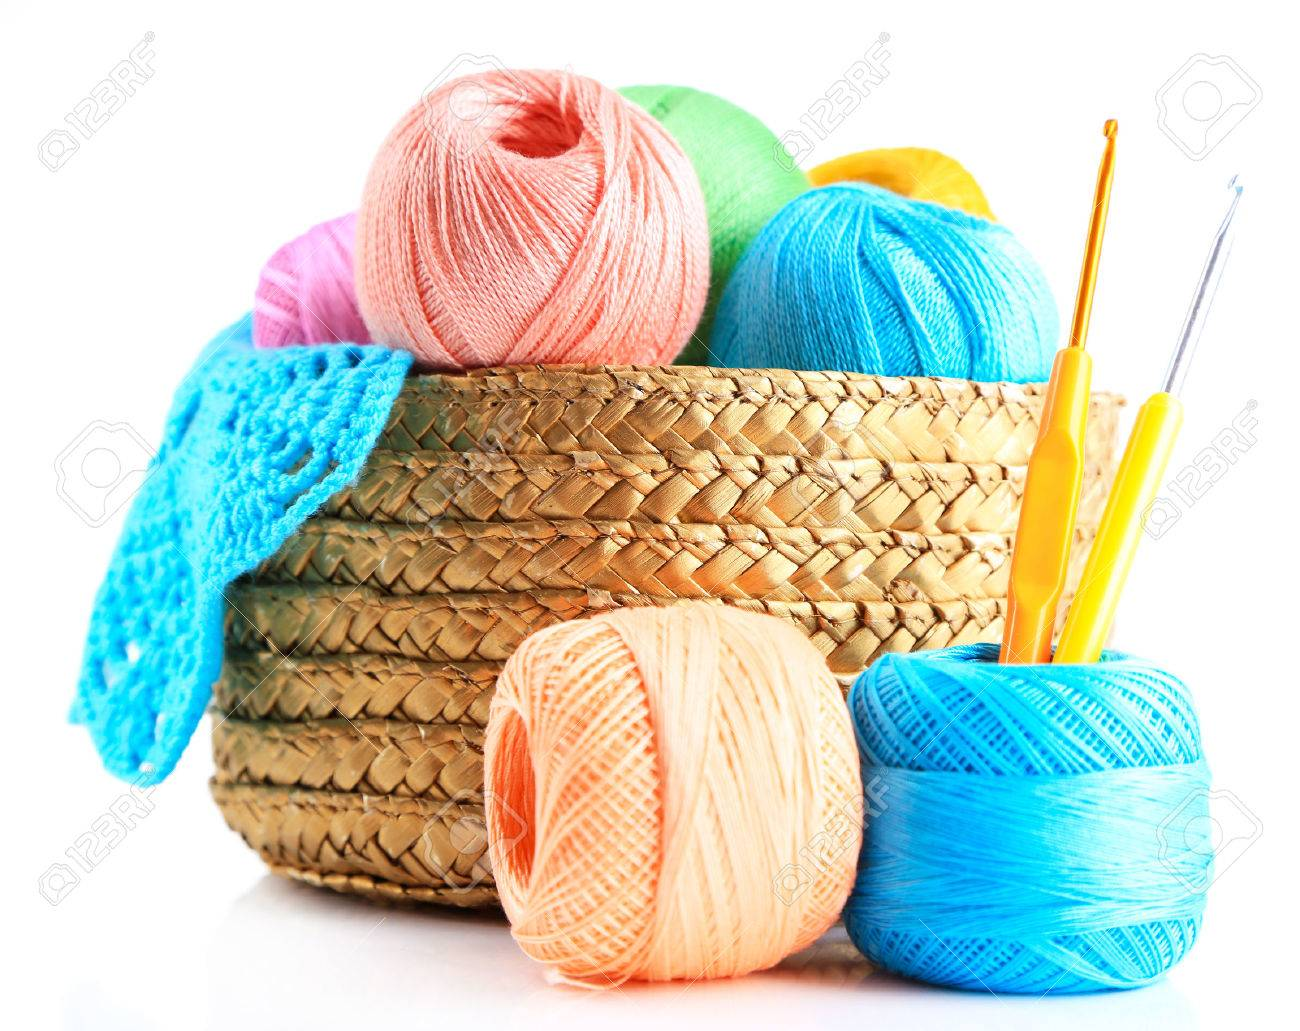 Colorful Yarn For Knitting With Napkin In Wicker Basket And Crochet